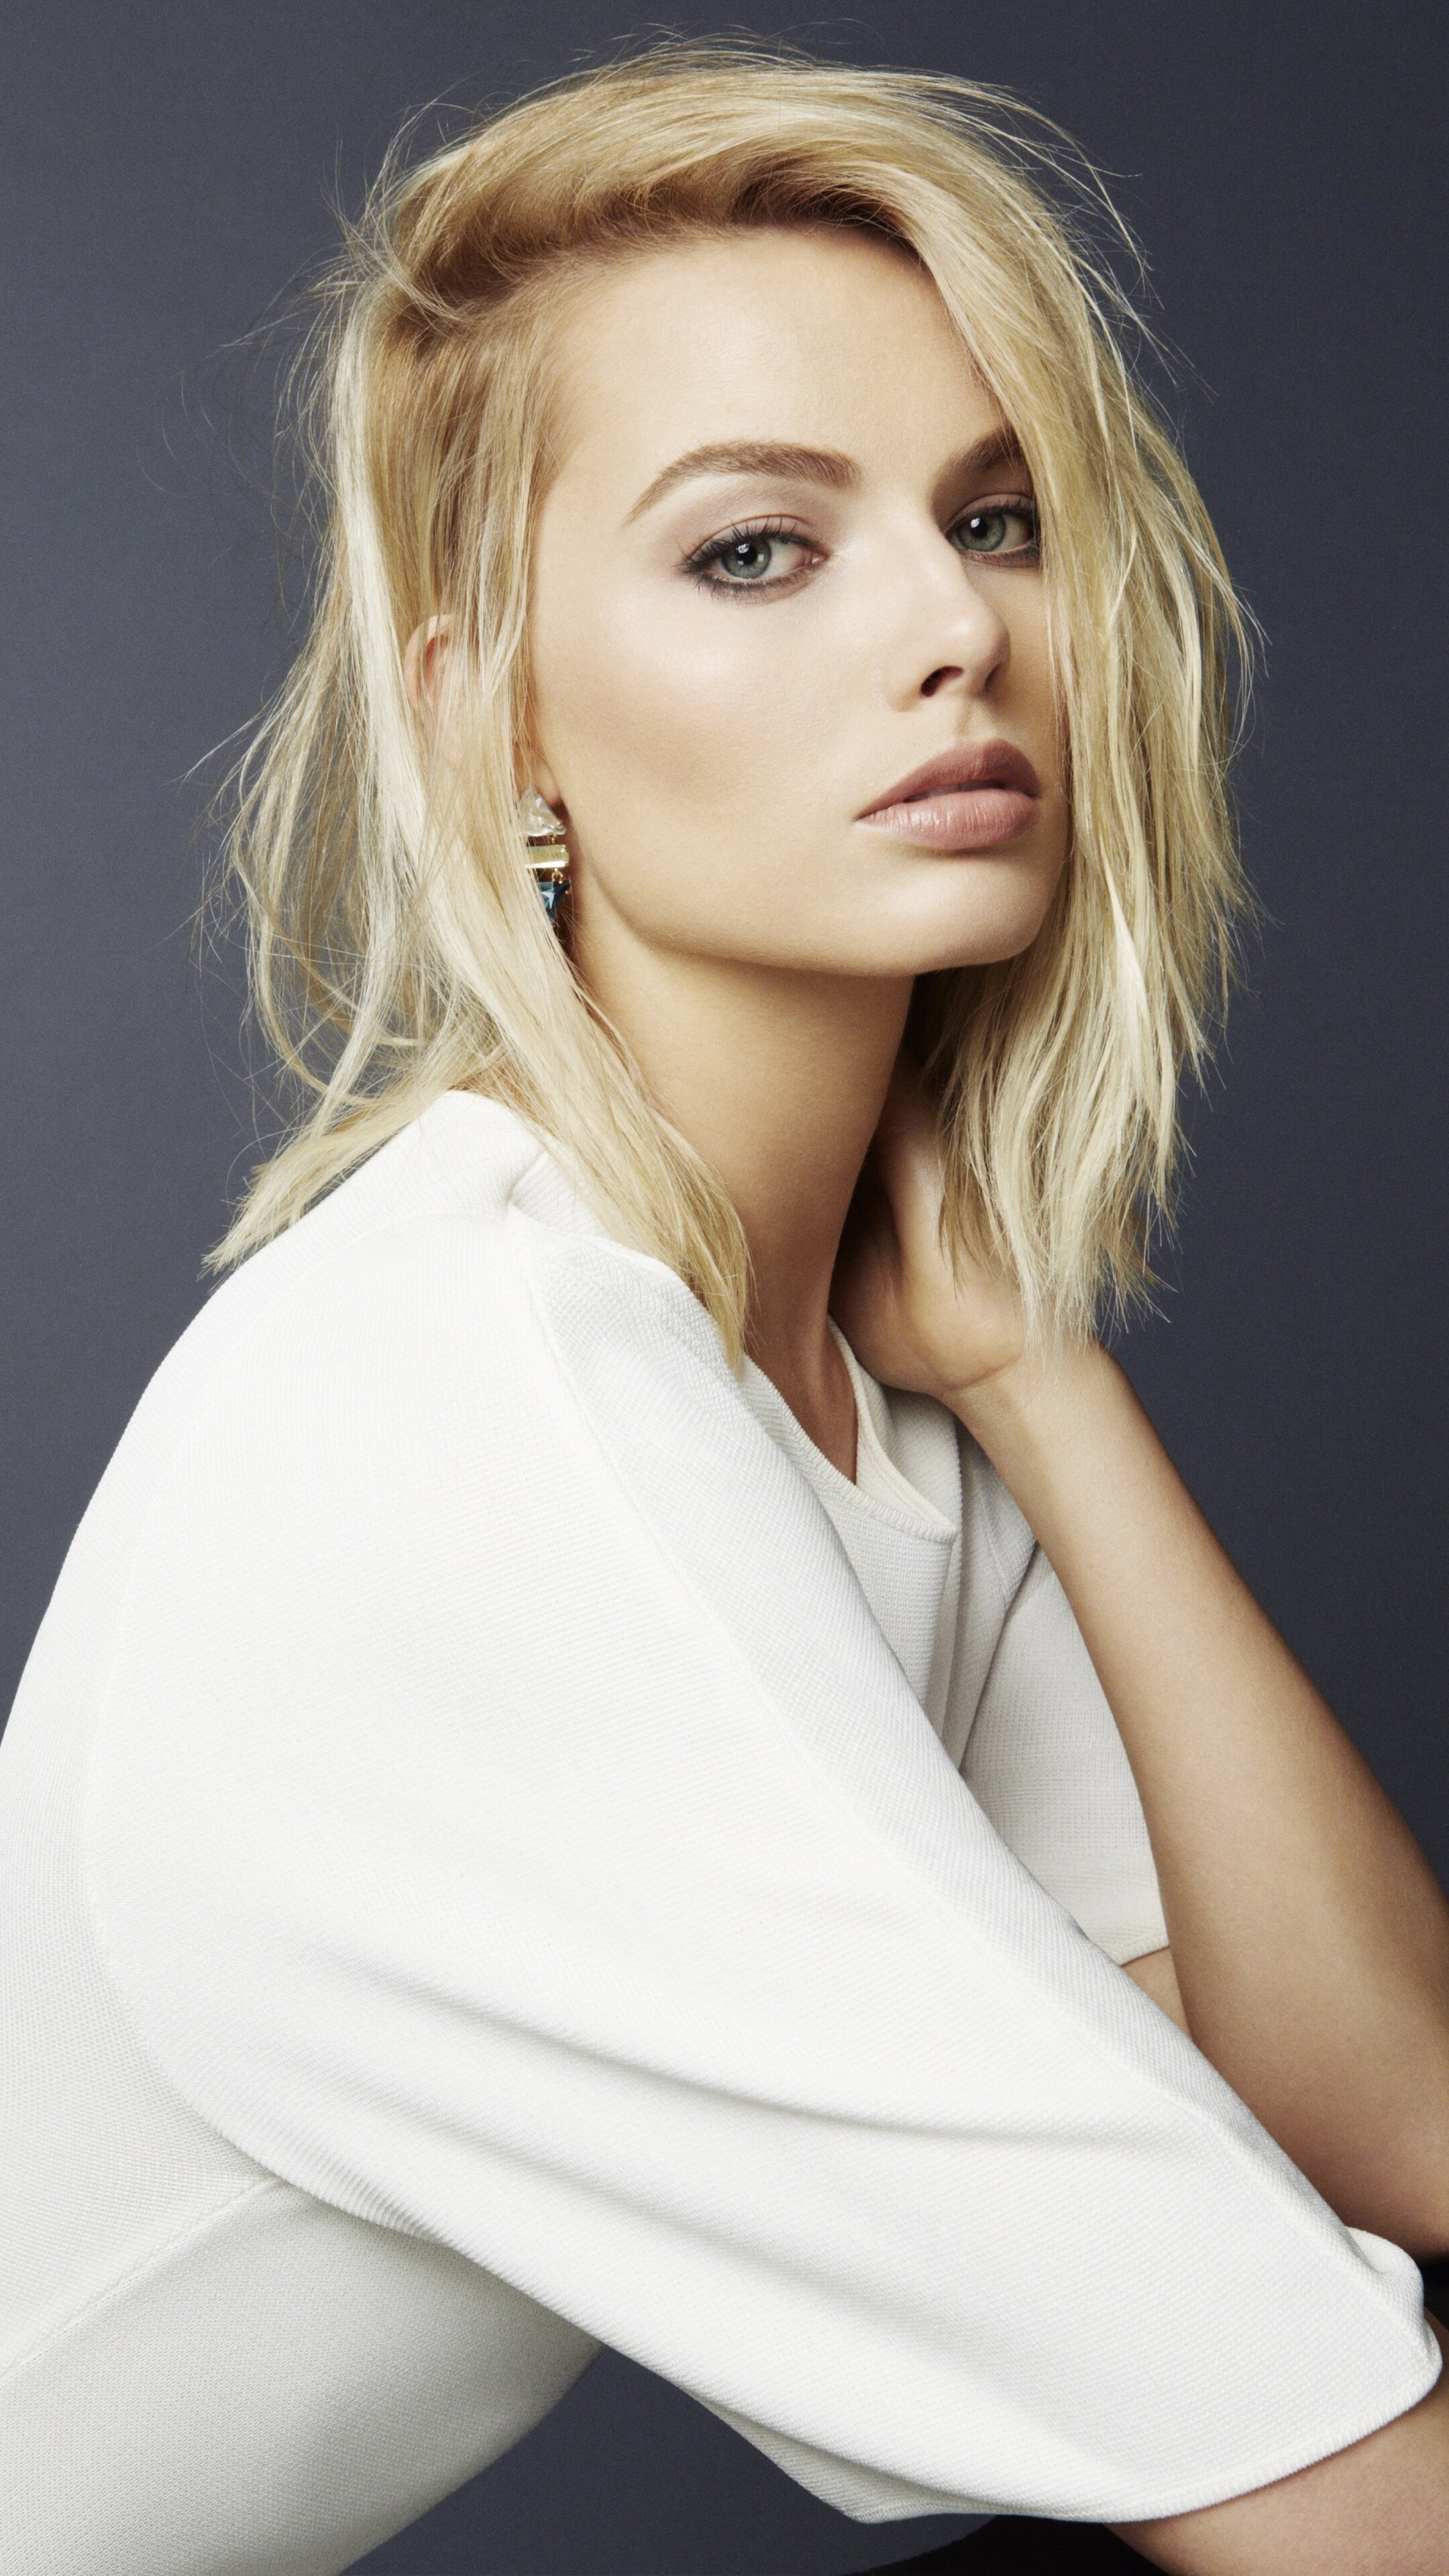 Margot Robbie HD Wallpapers, Pictures, Images